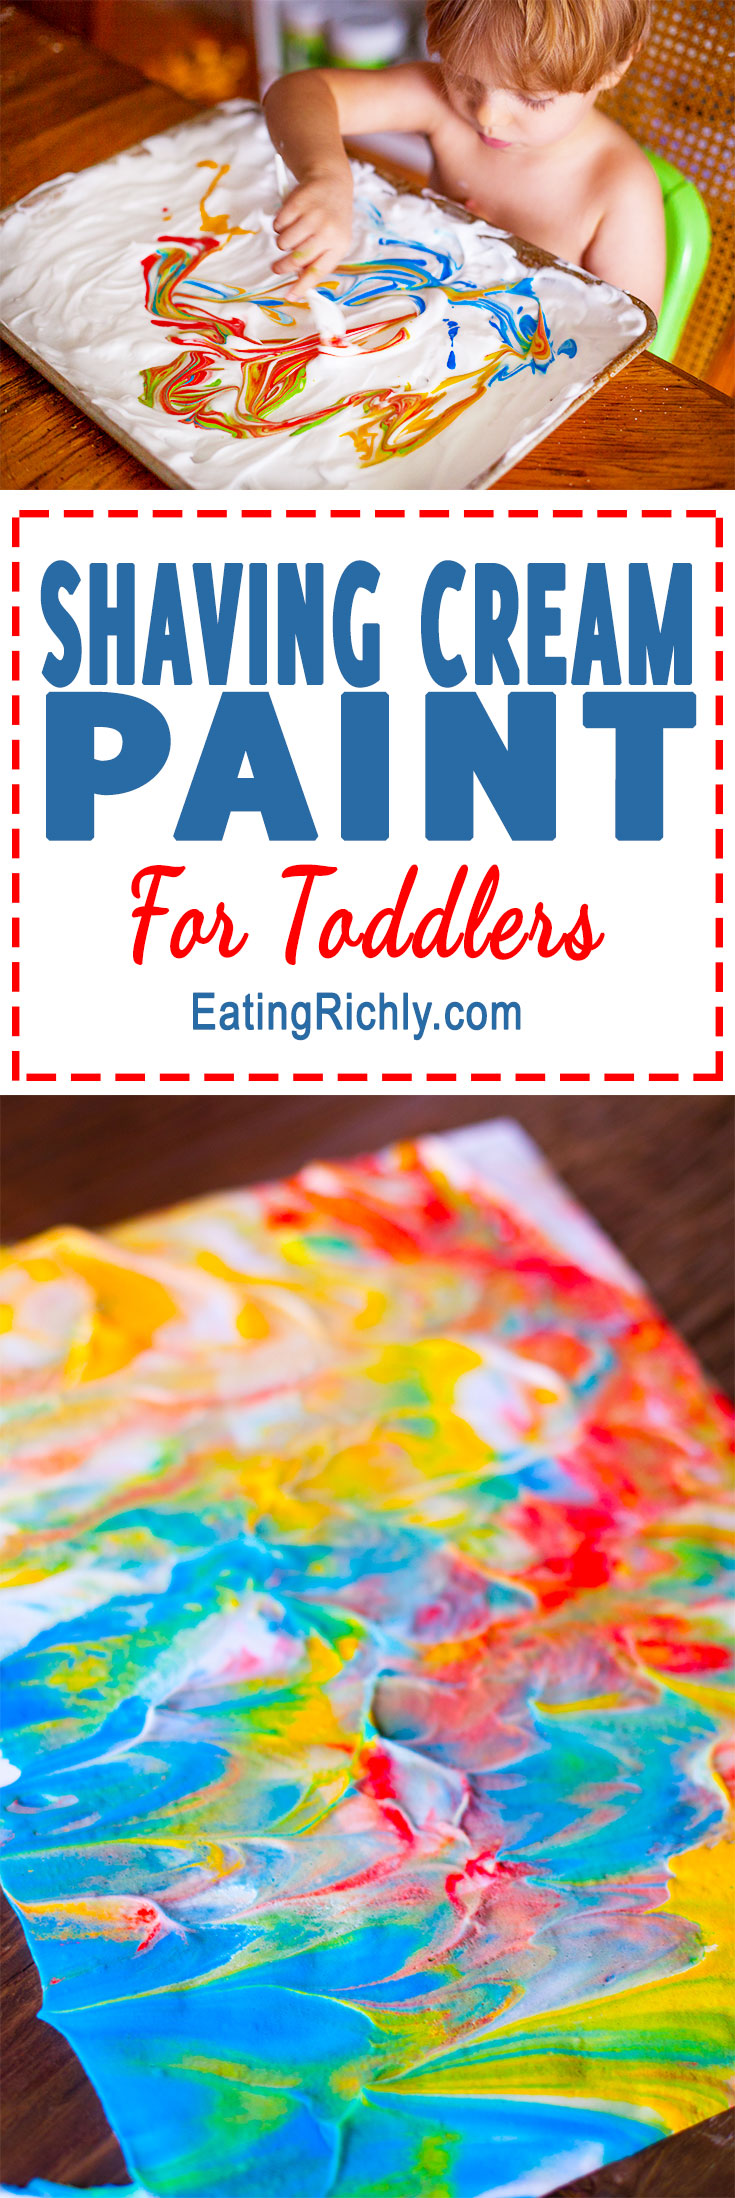 Shaving cream paint is a fun way for your toddler to create beautiful marbled works of art, and get some sensory play at the same time. From EatingRichly.com